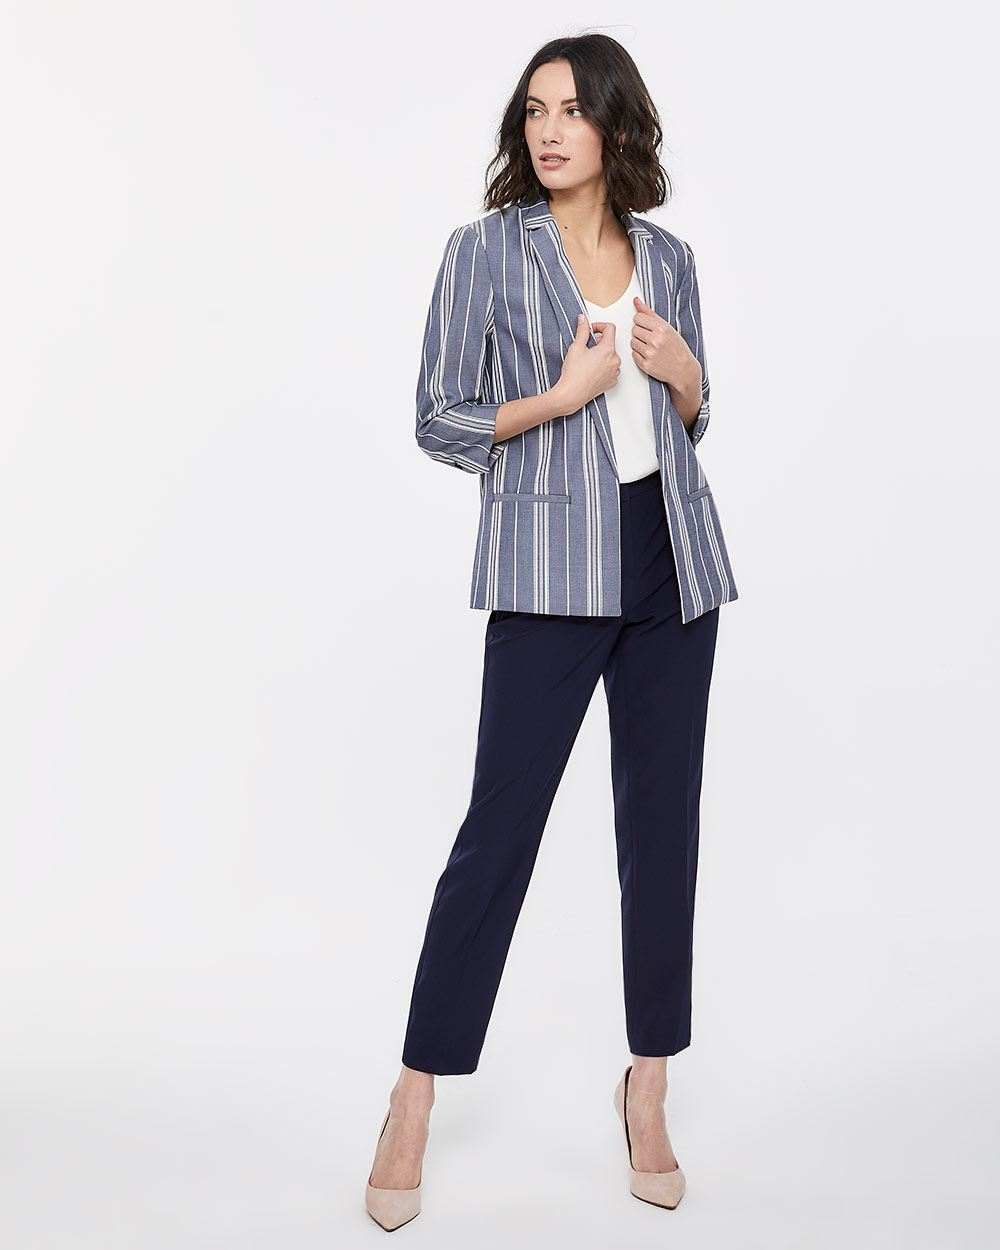 Willow & Thread Open Blazer